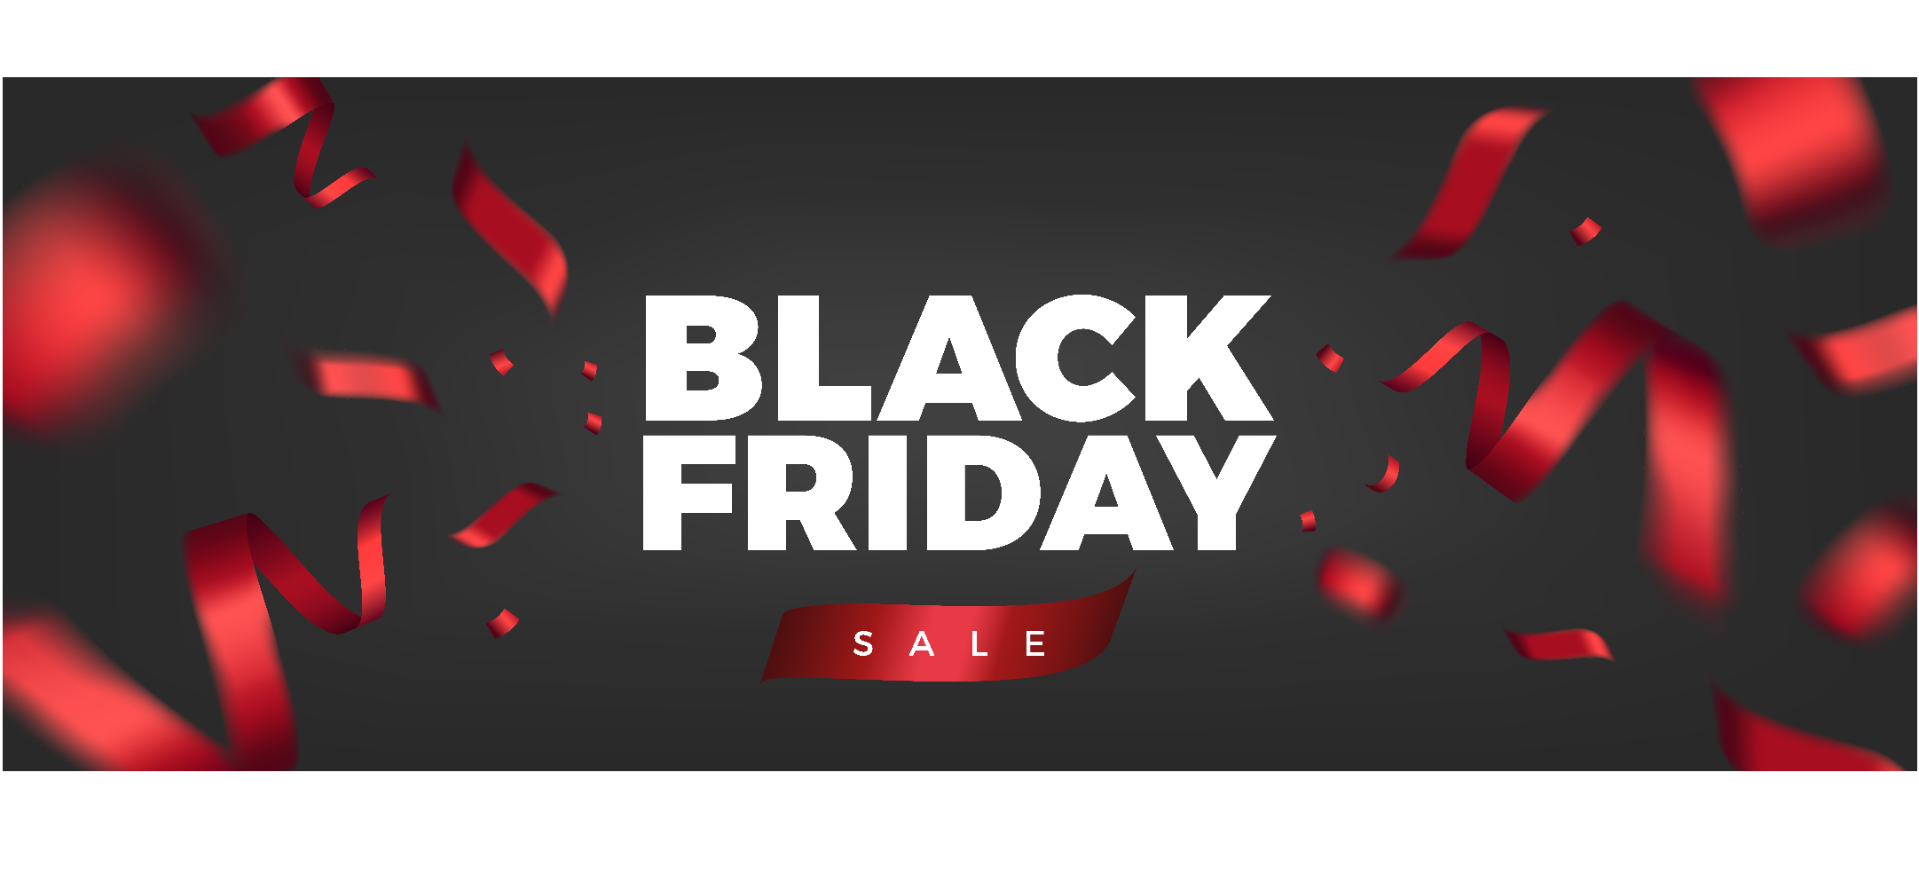 Shop our black friday deals at one of our 8 locations or online november 29 through december 1st! We have deals on styles from your favorite brands like vionic, ugg, sperry, ariat, corral